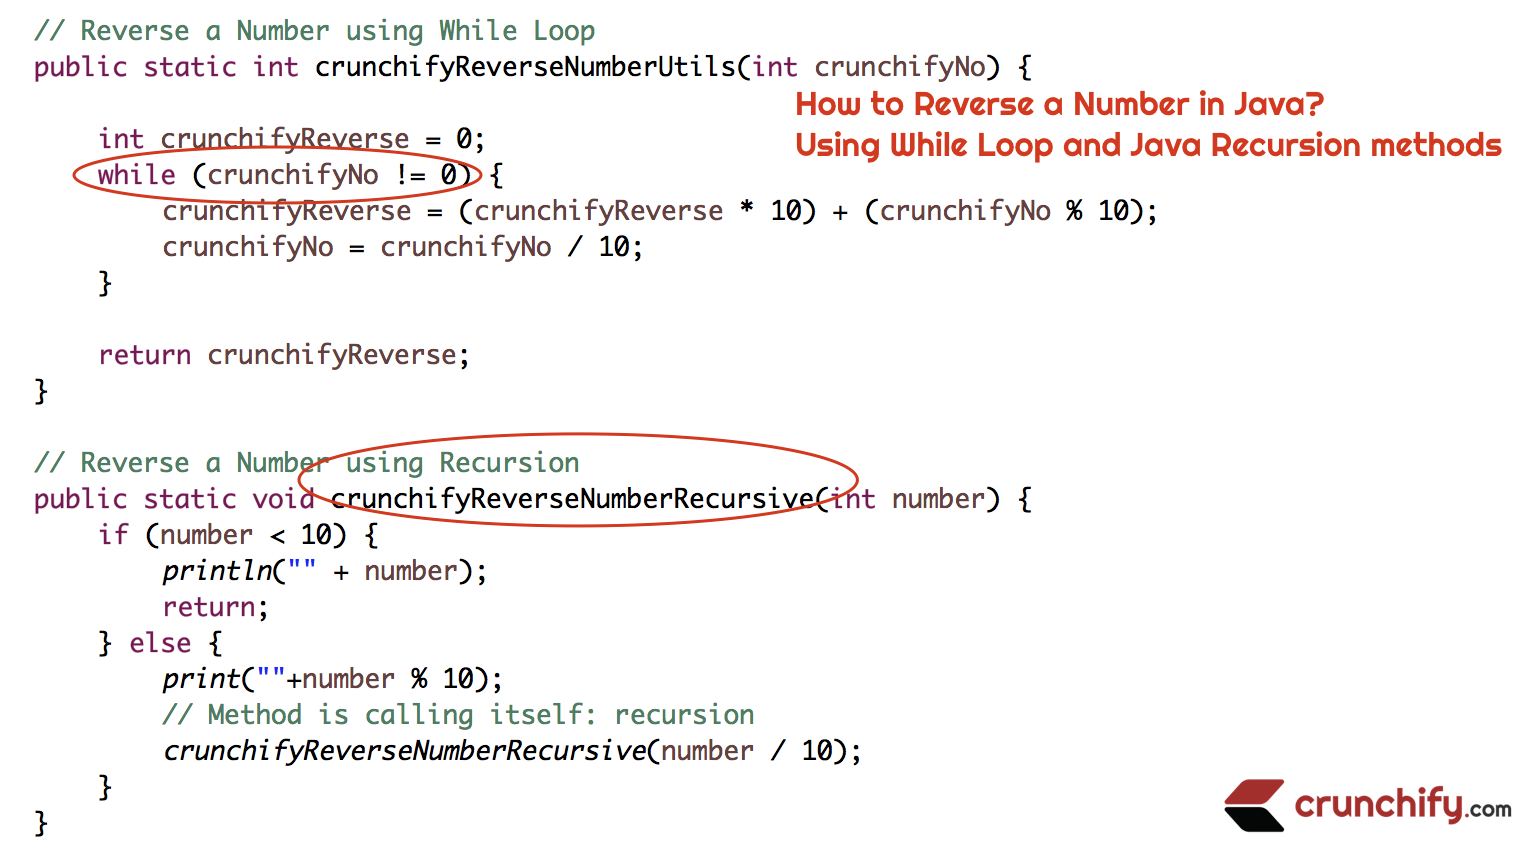 How to Reverse a Number in Java? Using While Loop and Java